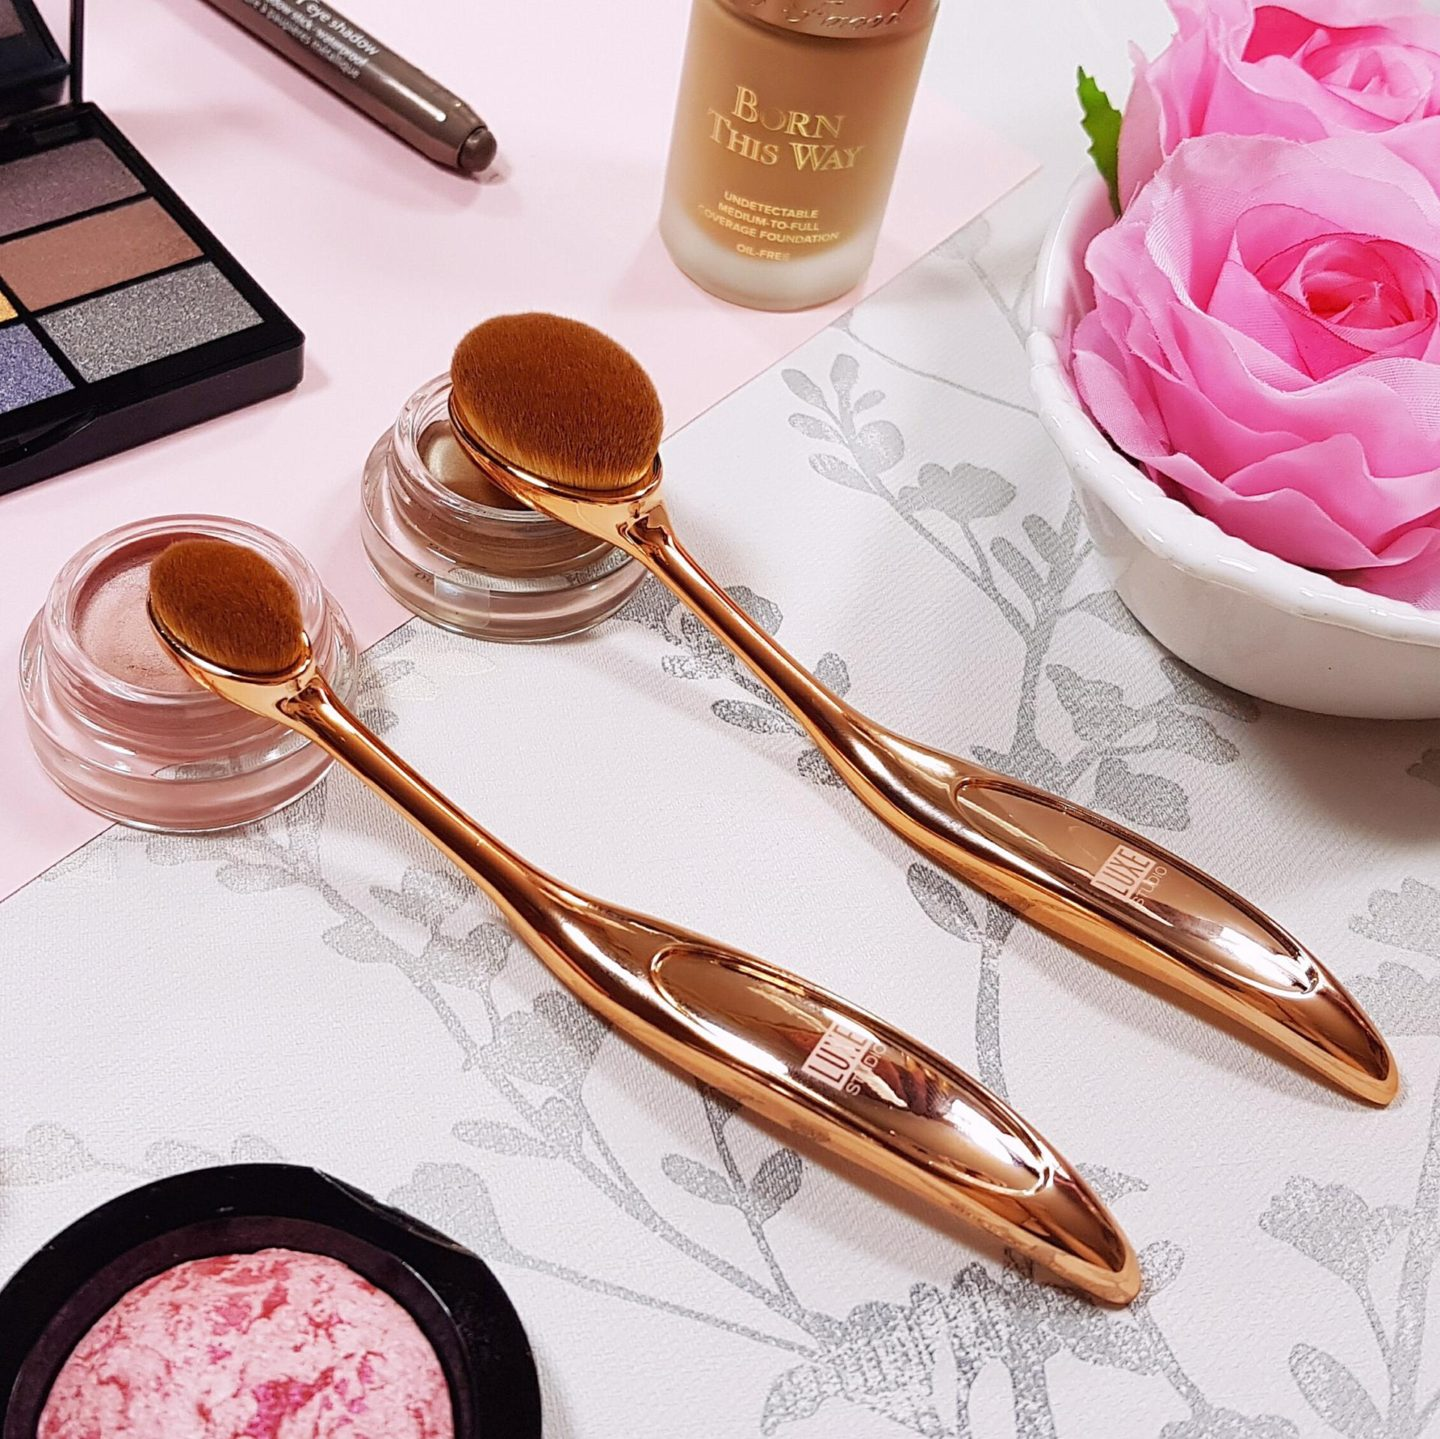 Rose Gold Makeup Brushes and a selection of makeup